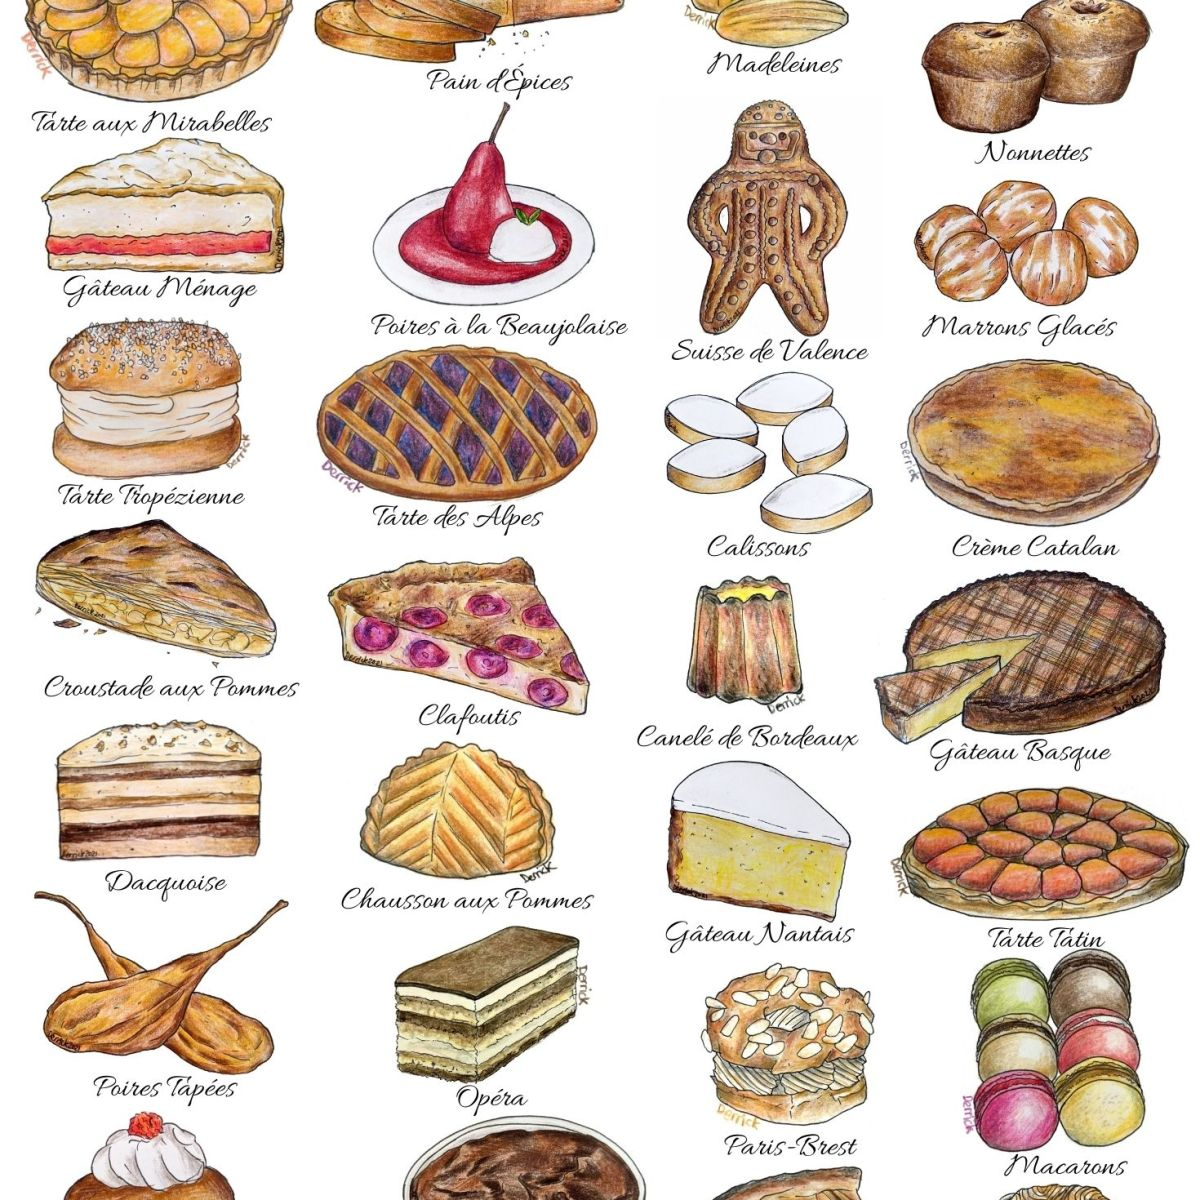 Illustration of the different desserts from the different regions of france